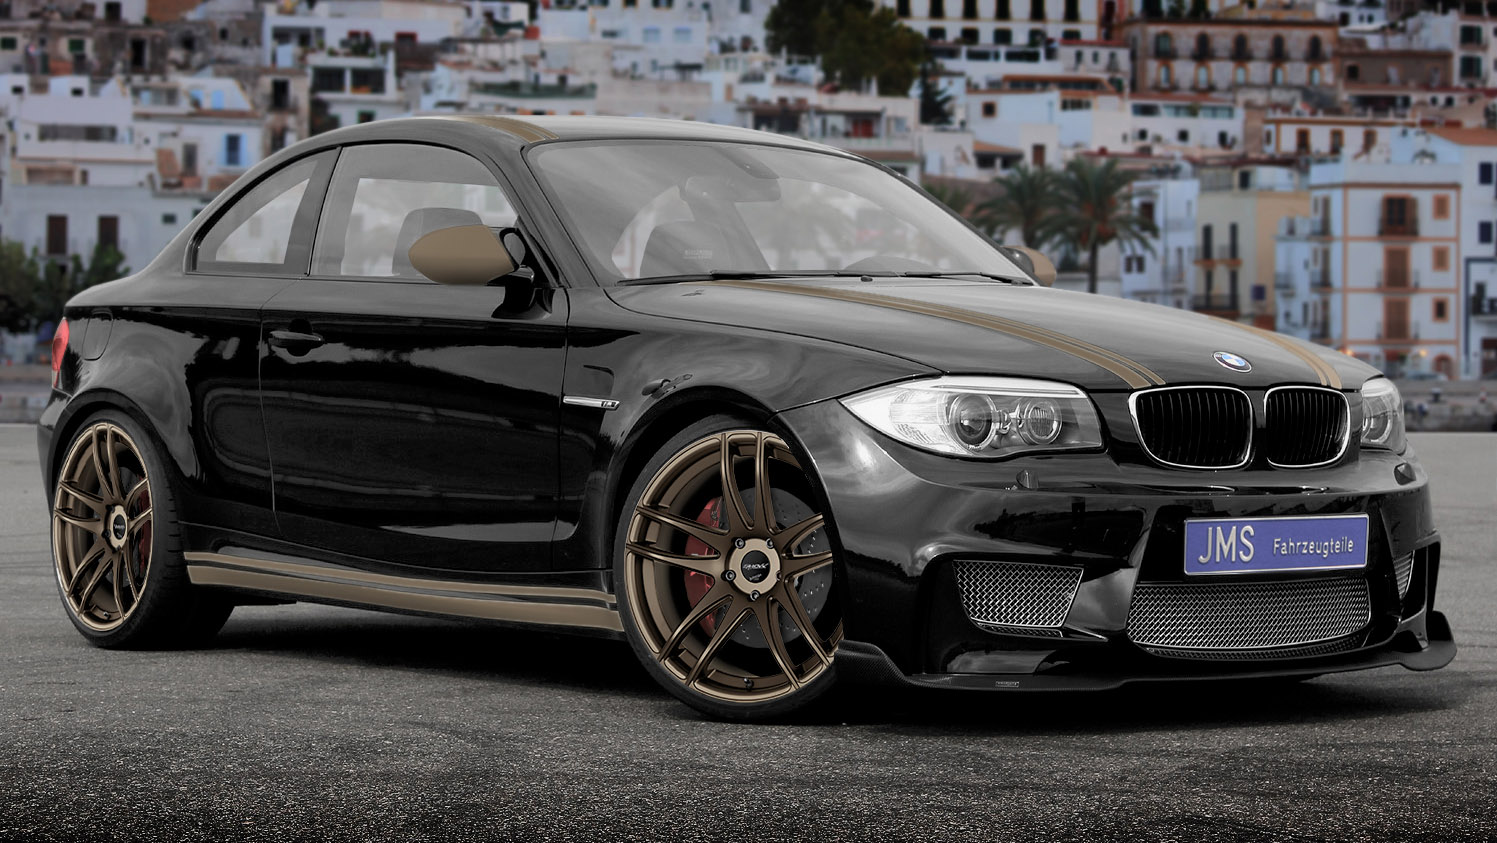 jms previews custom bmw 1 series m coupe e82. Black Bedroom Furniture Sets. Home Design Ideas